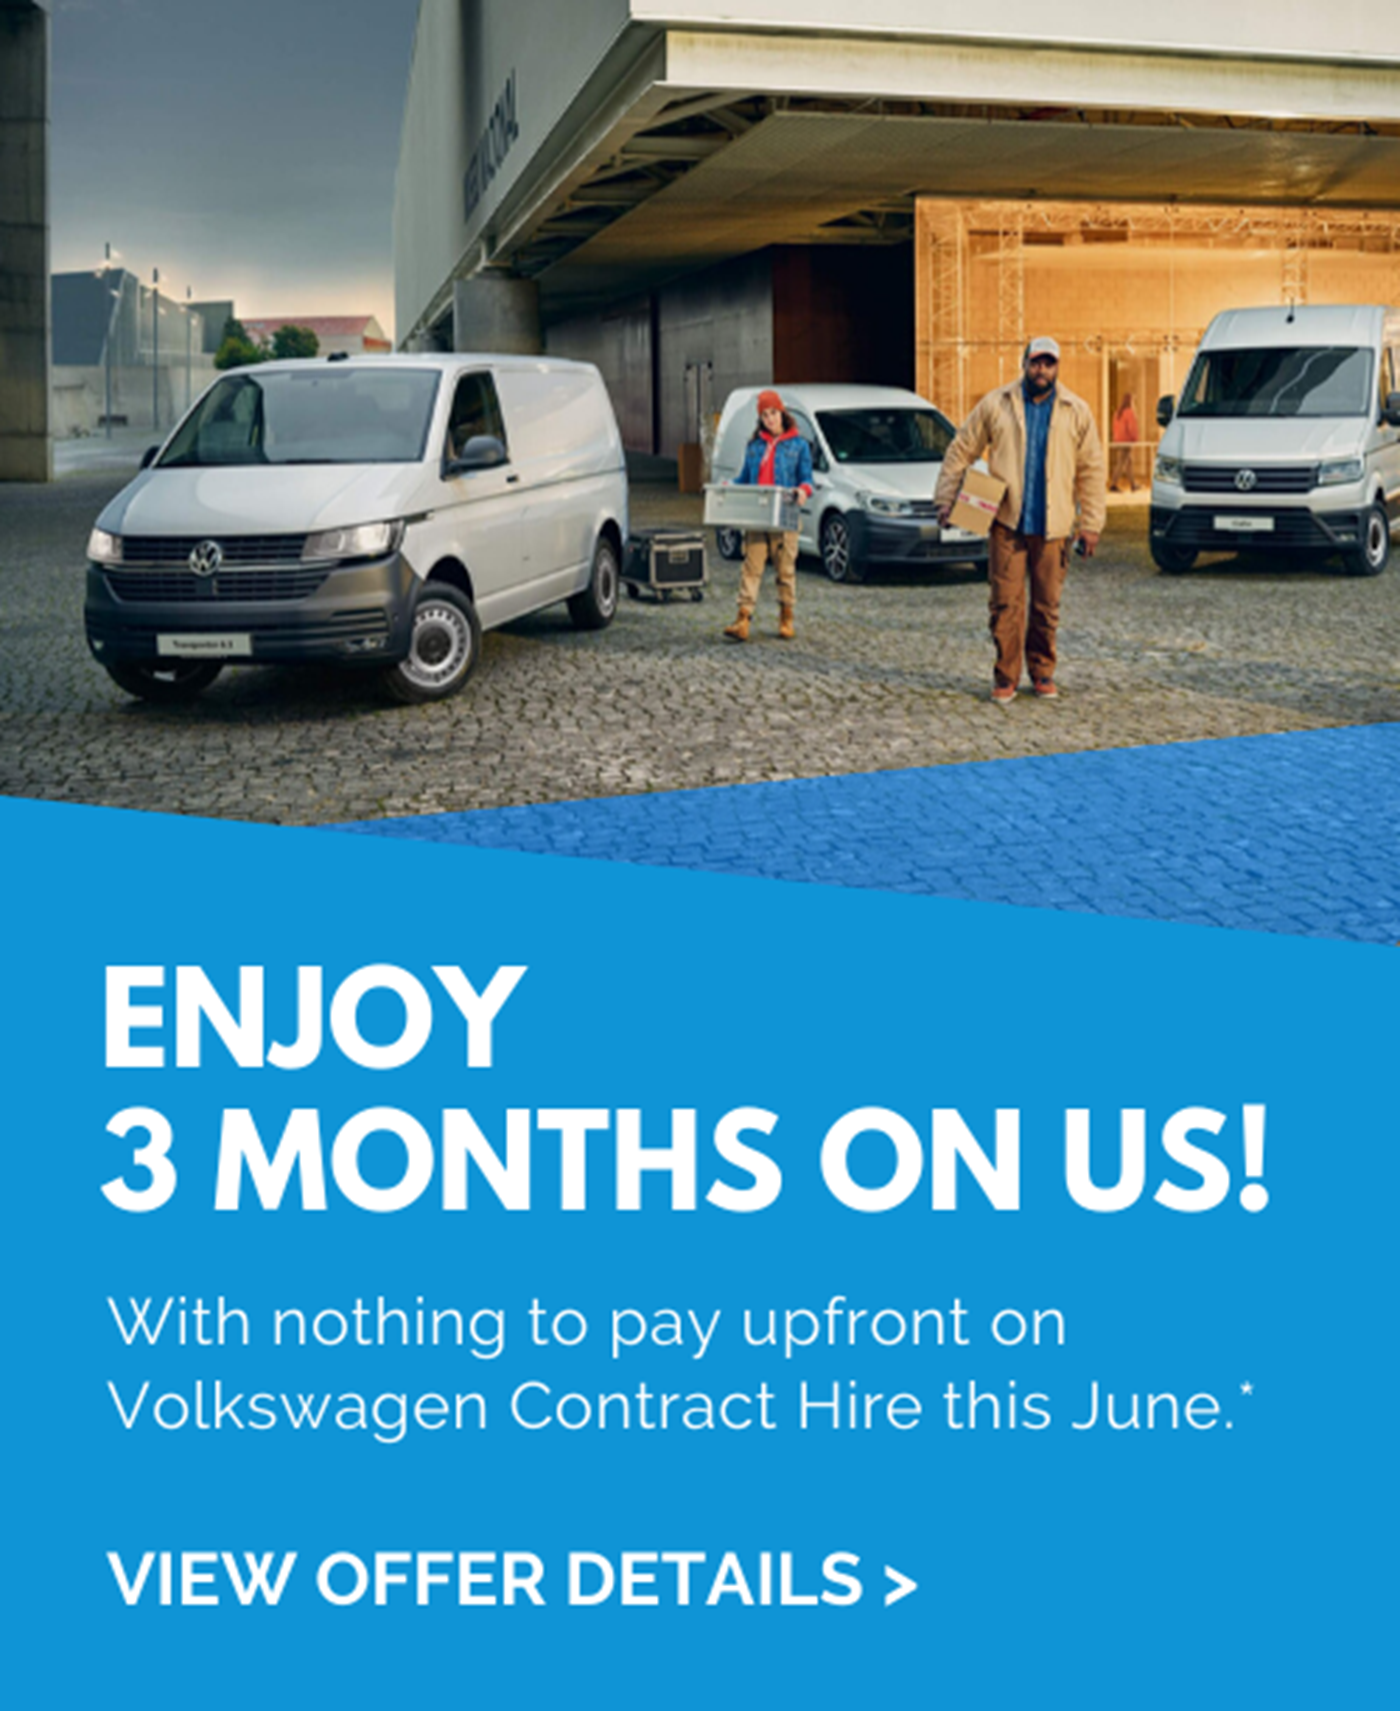 contact-hire-offer-free